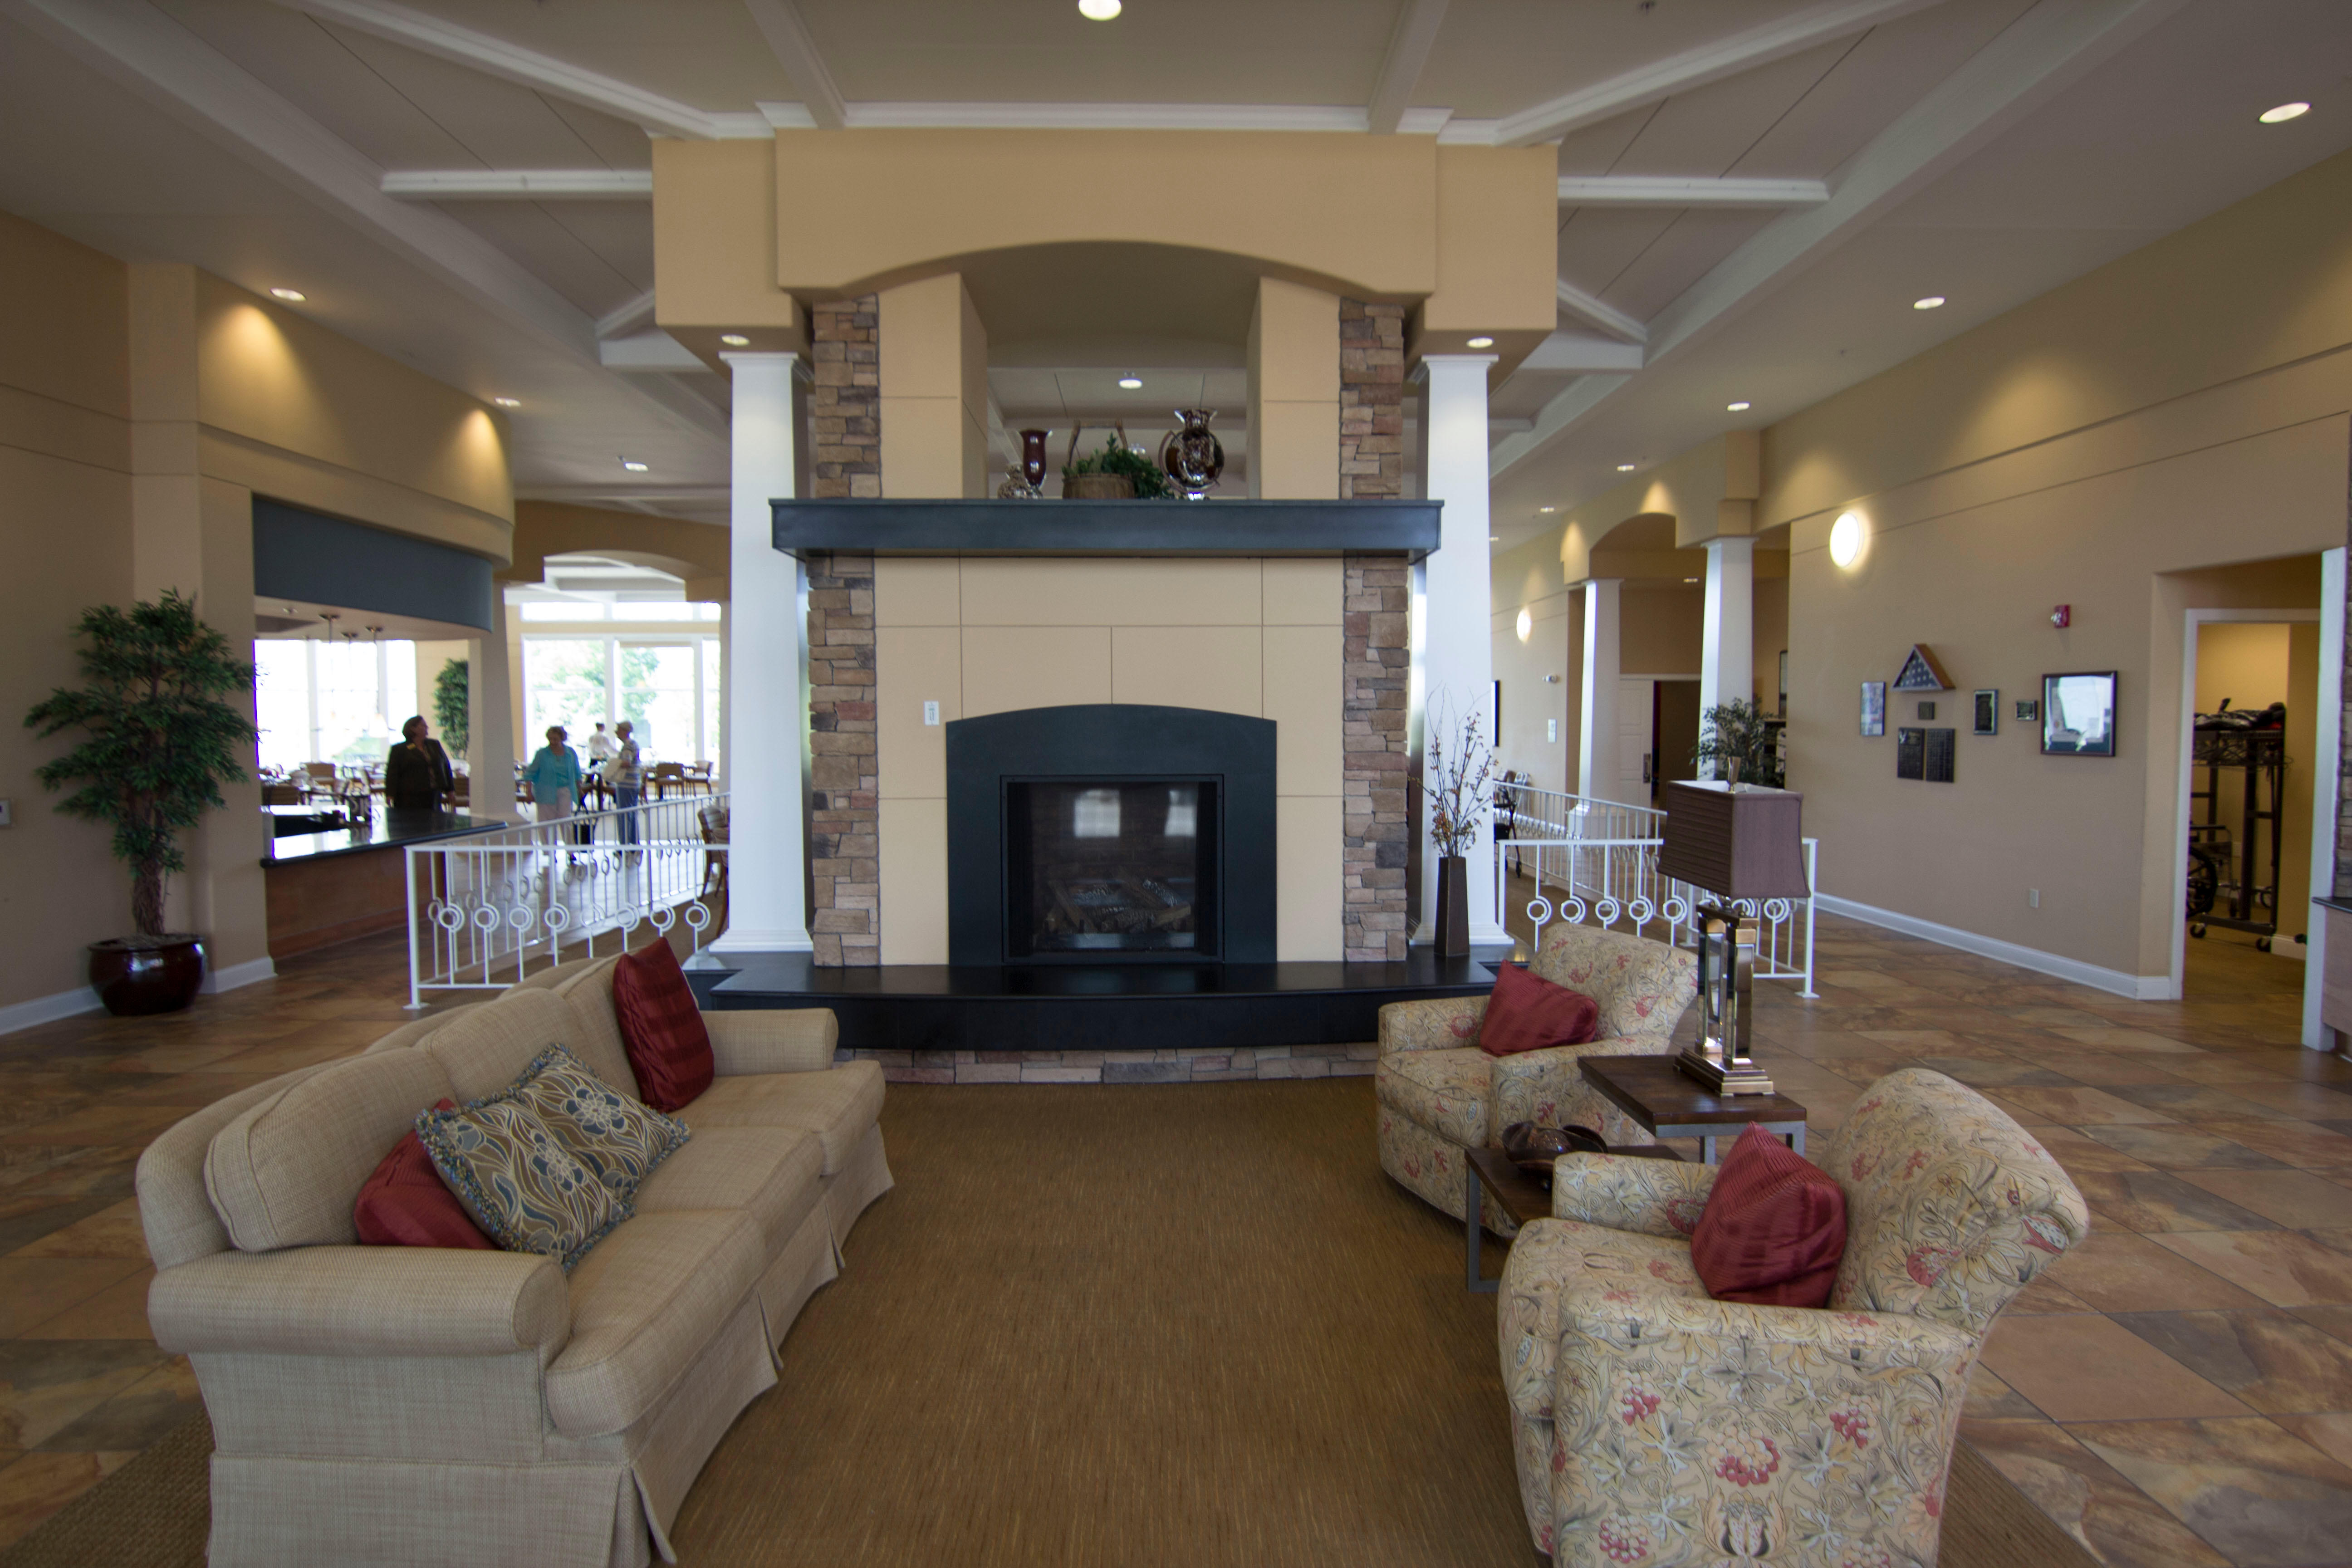 The Fountains Retirement Community image 2